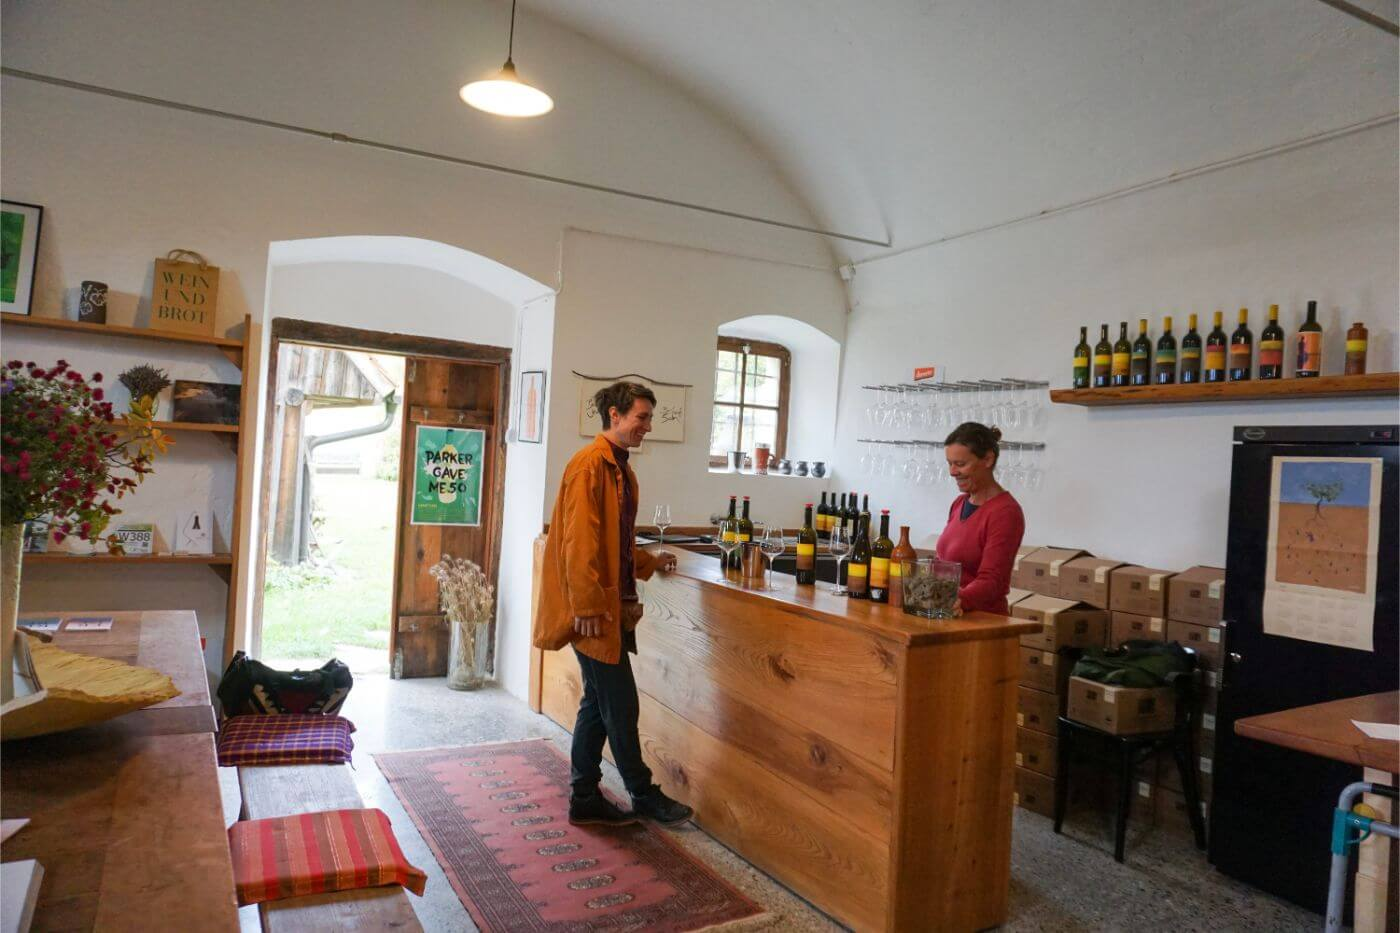 Weingut Maria and Sepp Muster, Biodynamic winery in South Styria, Austria